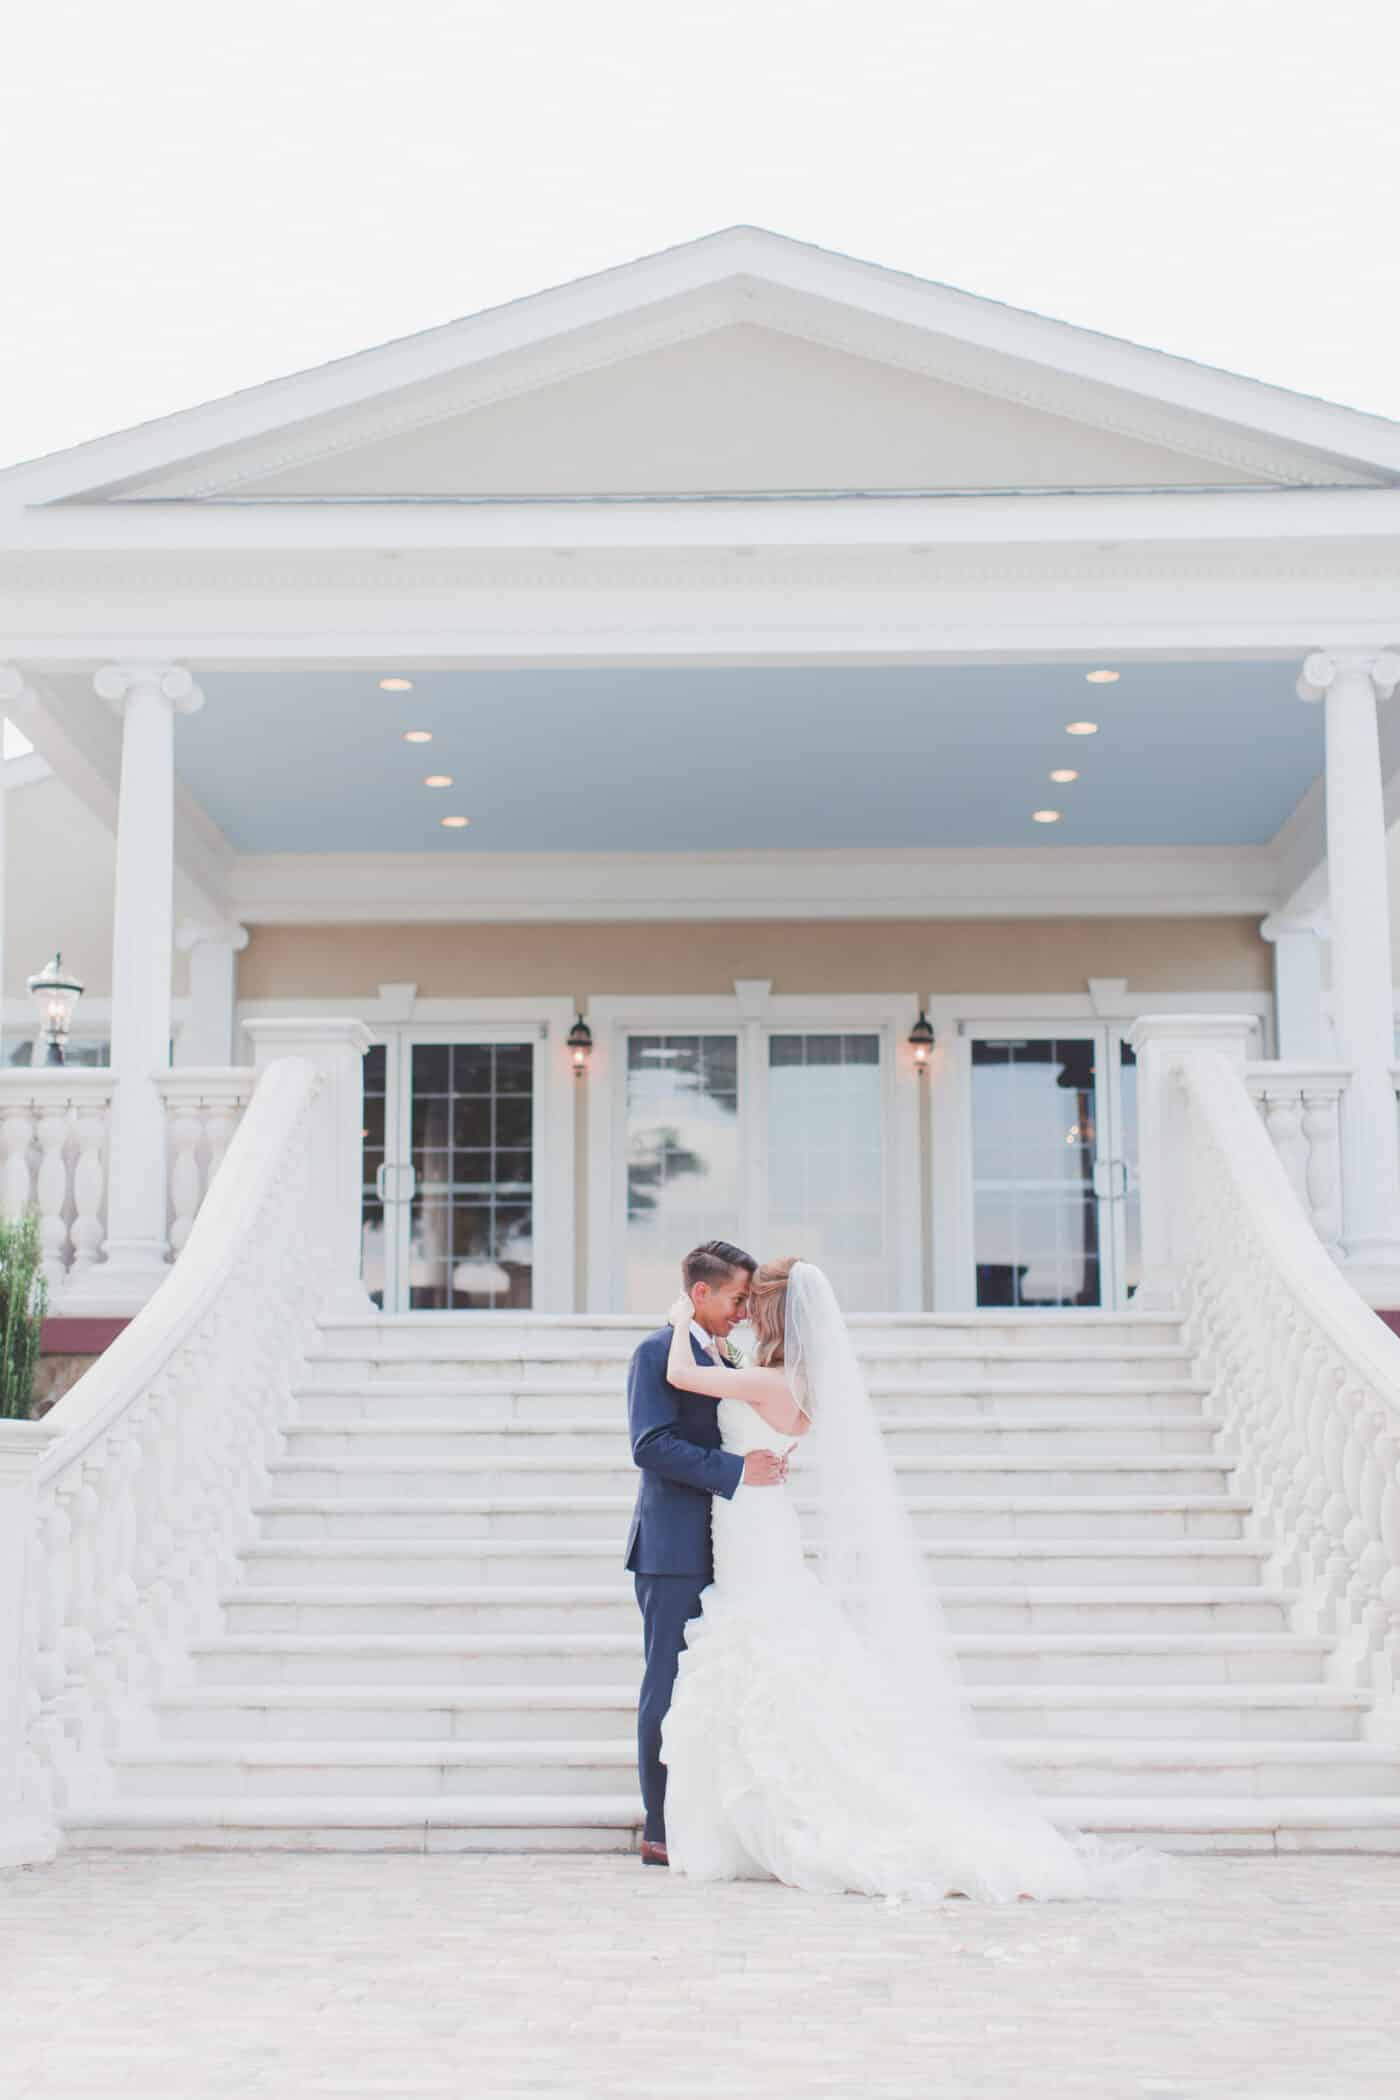 Selecting Your Virginia Wedding Venue | Entwined Events | Venue: The Bedford Columns in Bedford, VA | Photo Credit: Annamarie Akins Photography